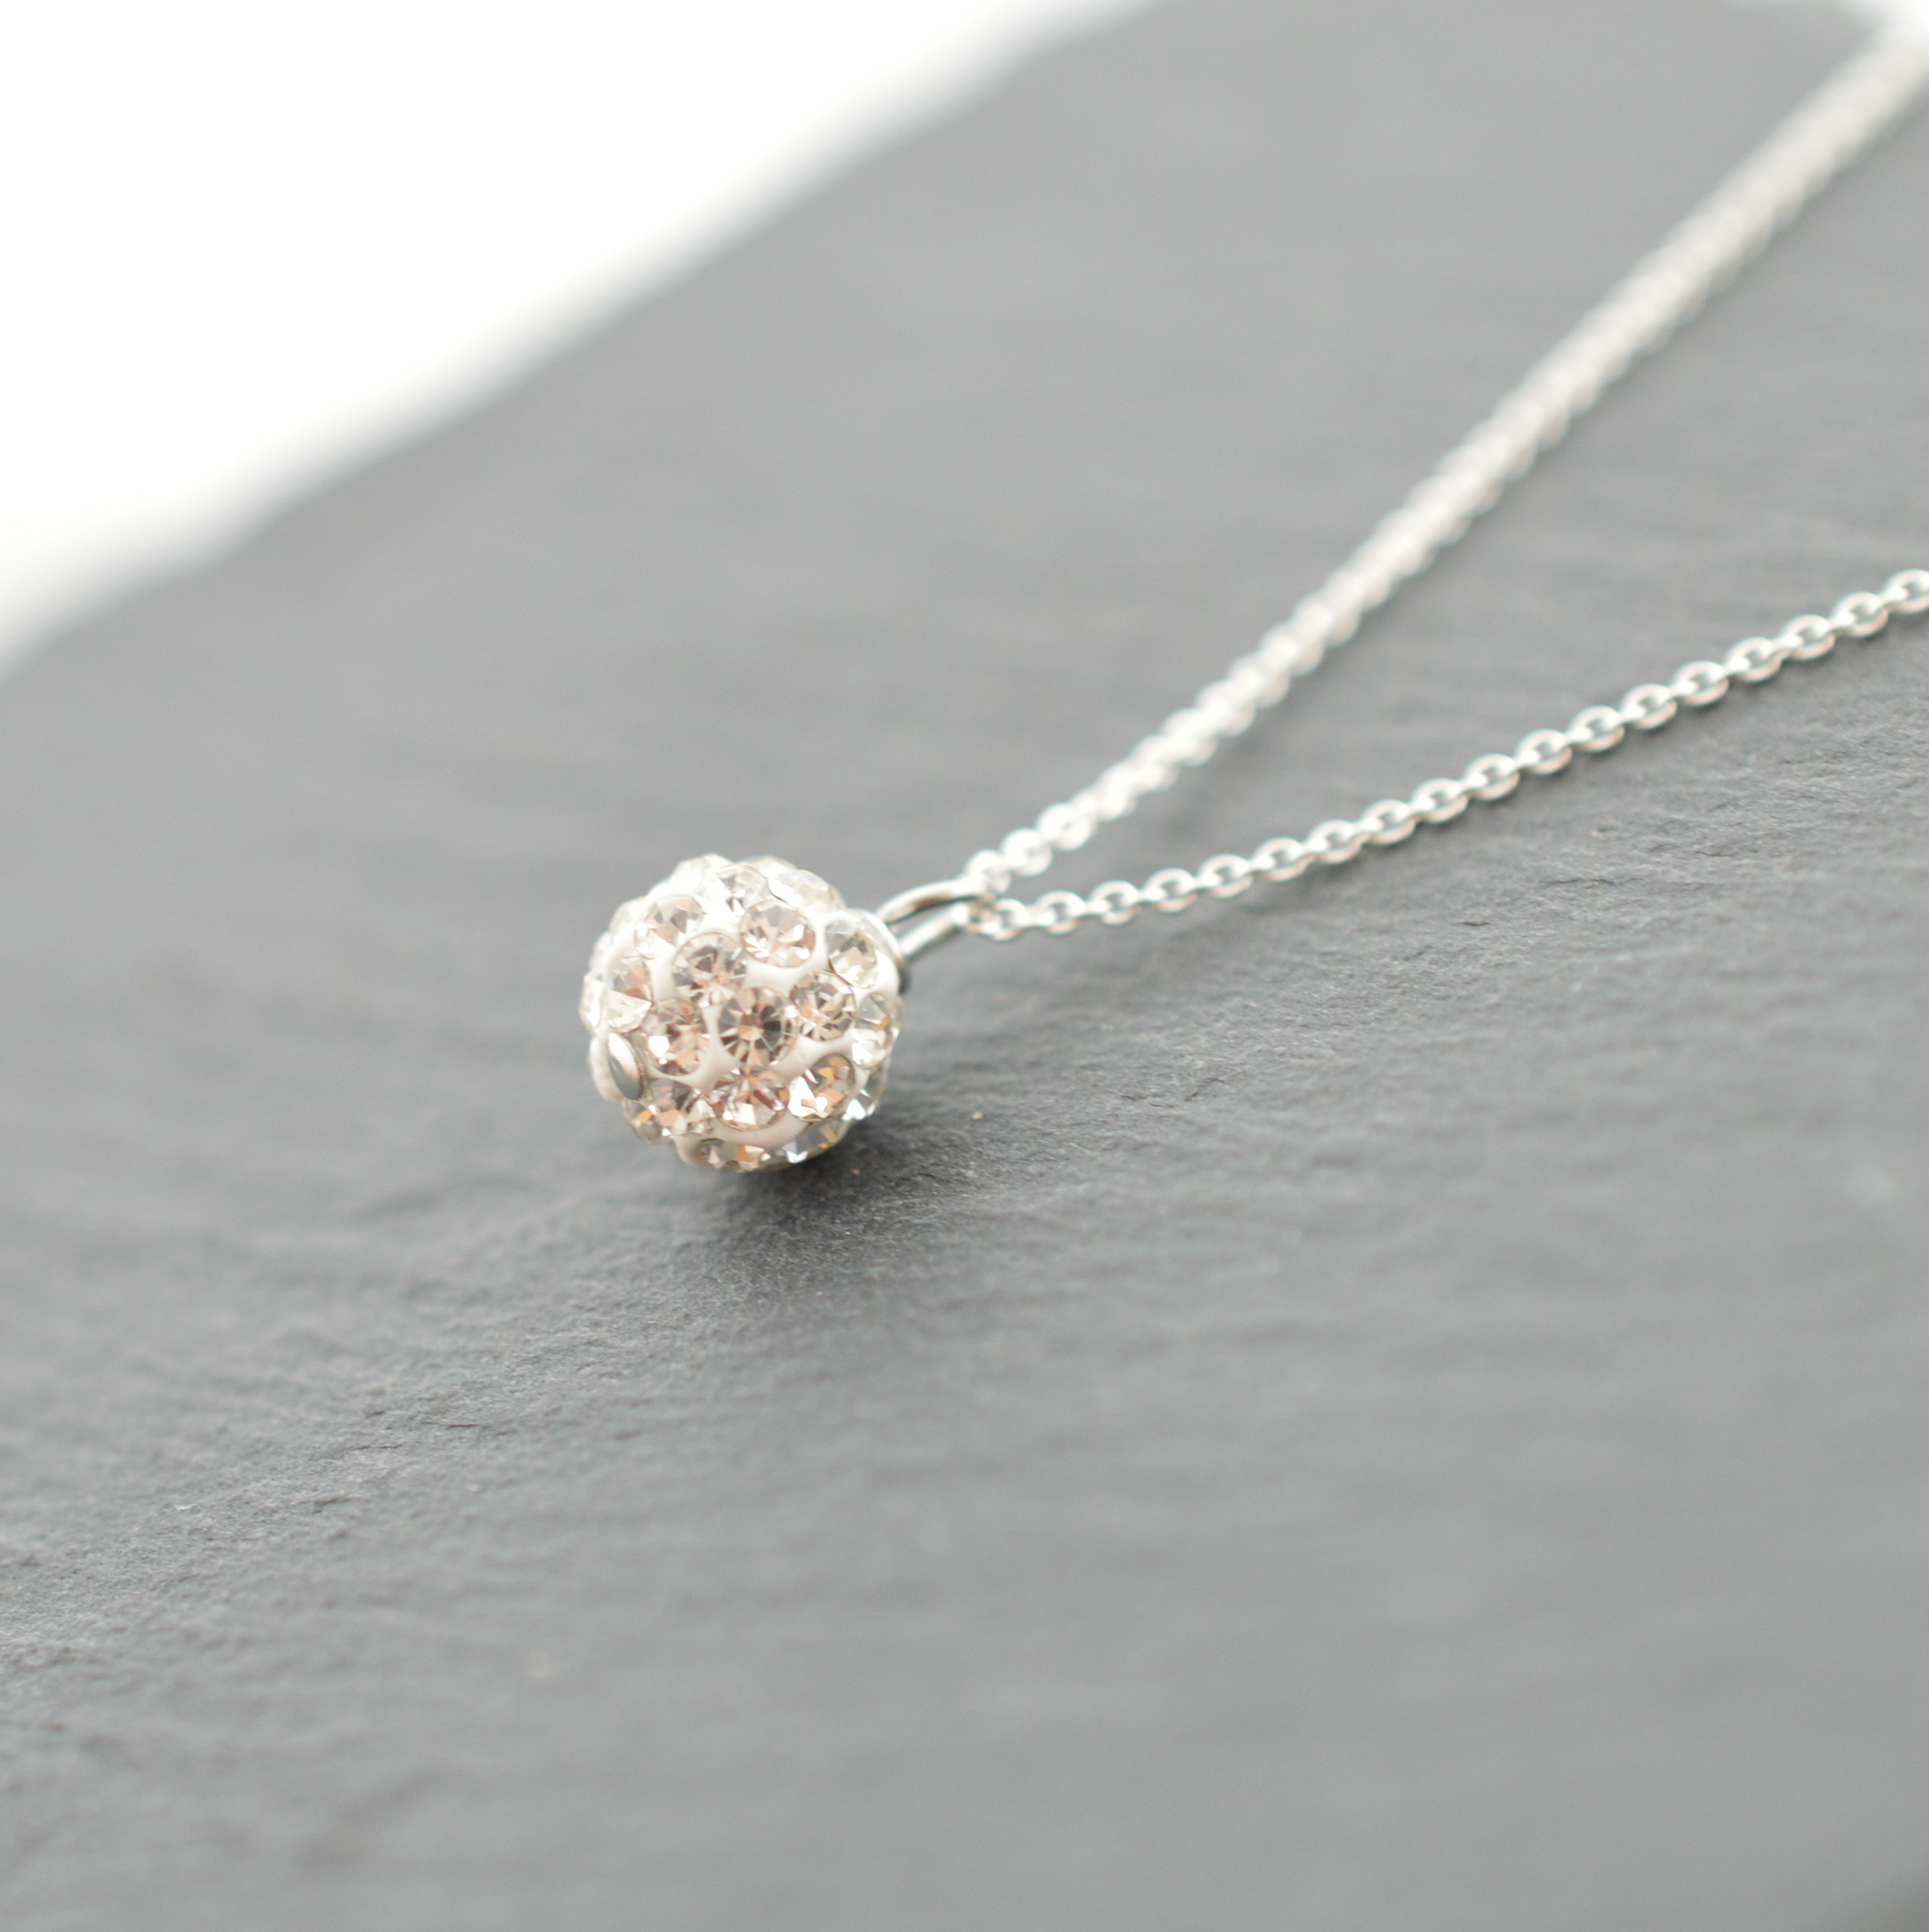 Swarovski Crystal Ball Necklace